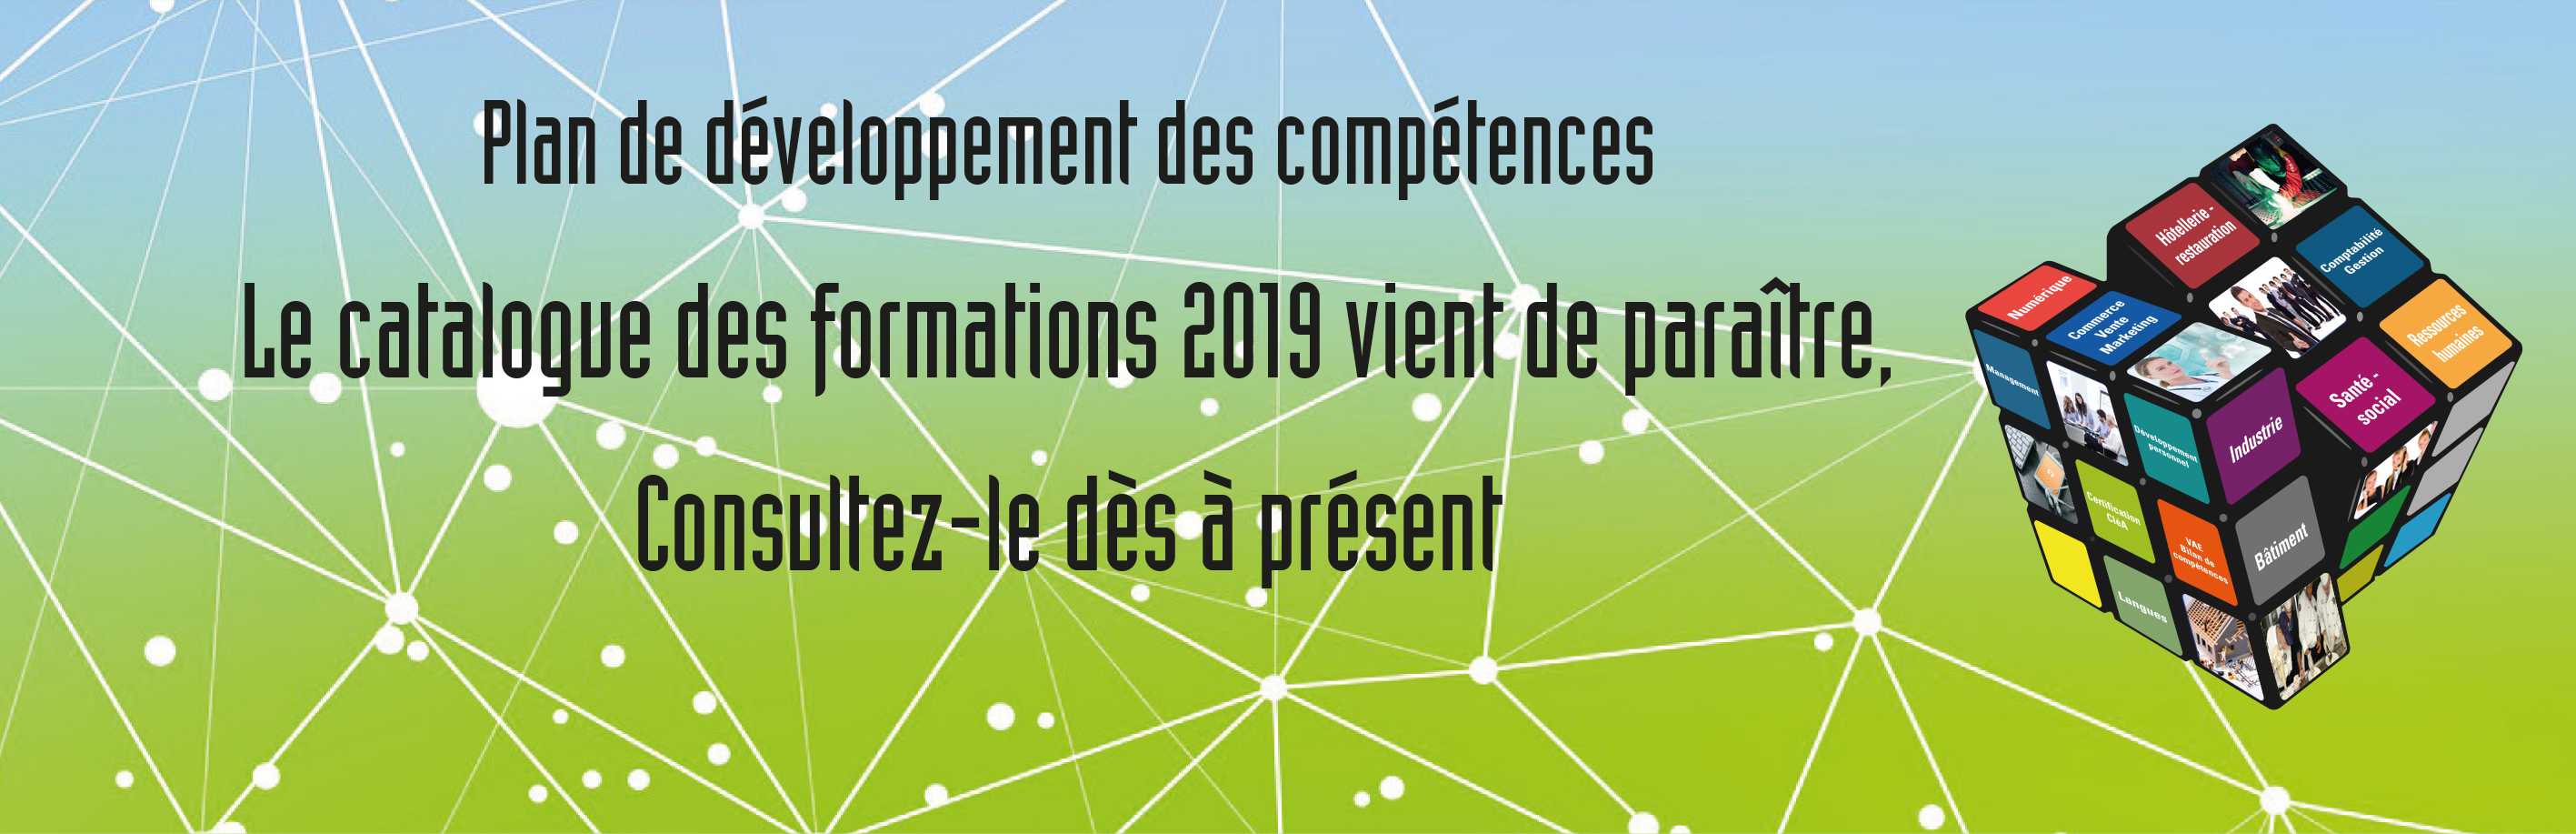 Camp_planformation-Bandeau_deroulant_site_web_2019